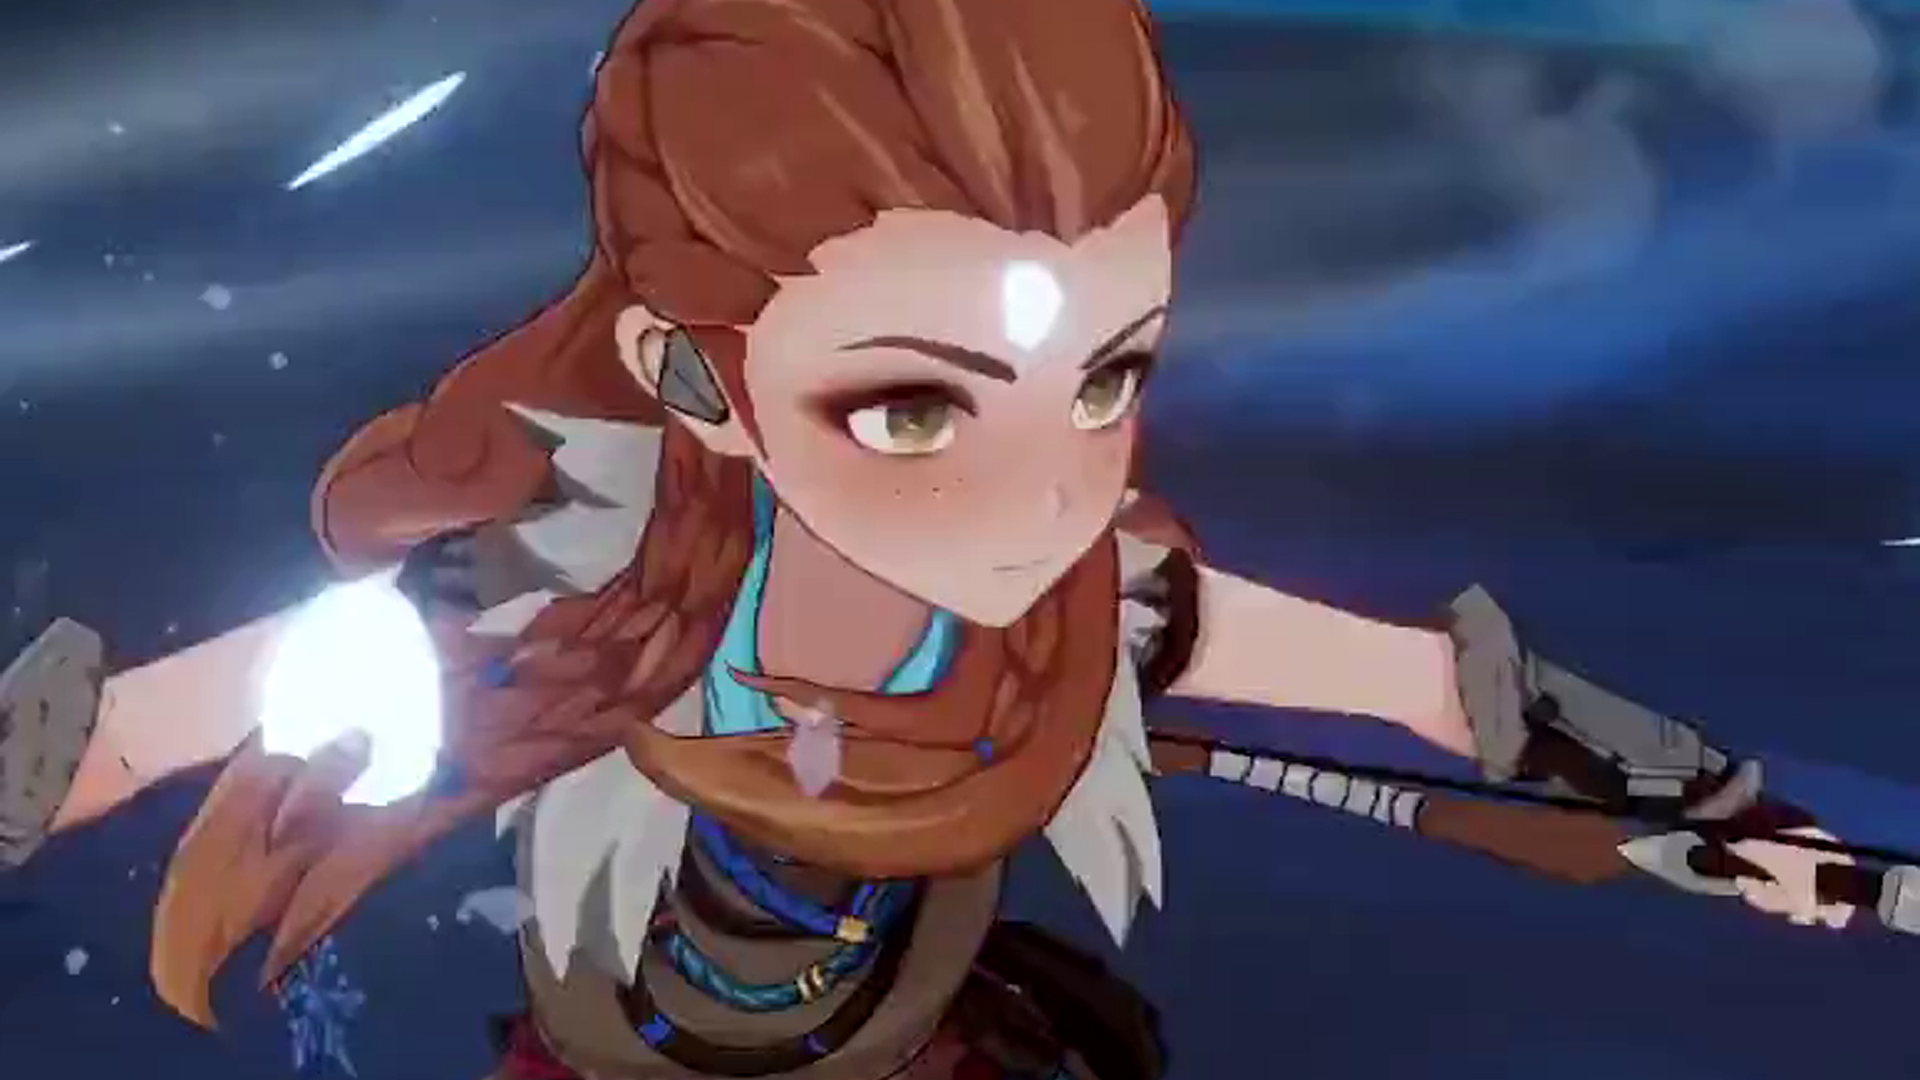 Here's the first gameplay of Horizon's Aloy in Genshin Impact